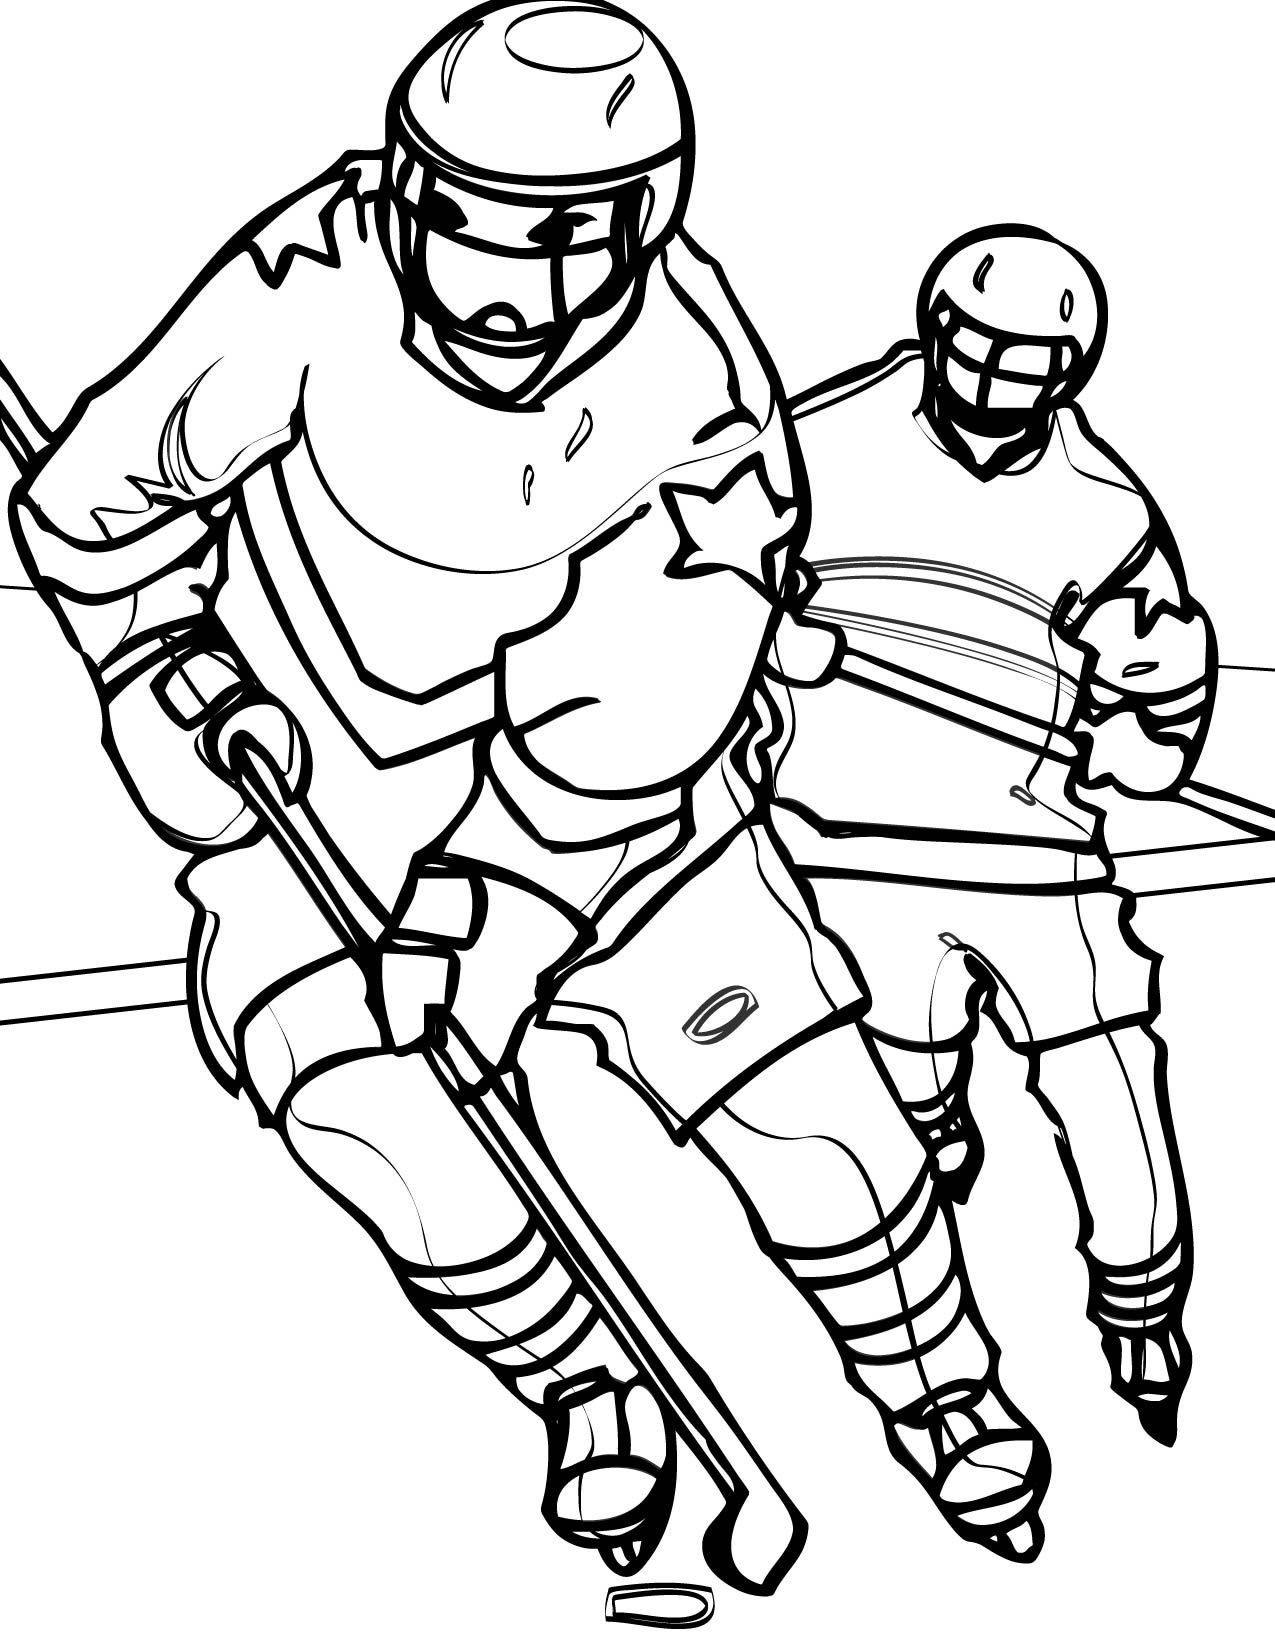 Coloring Pages Category For Stunning Sports Day Coloring Pages ...